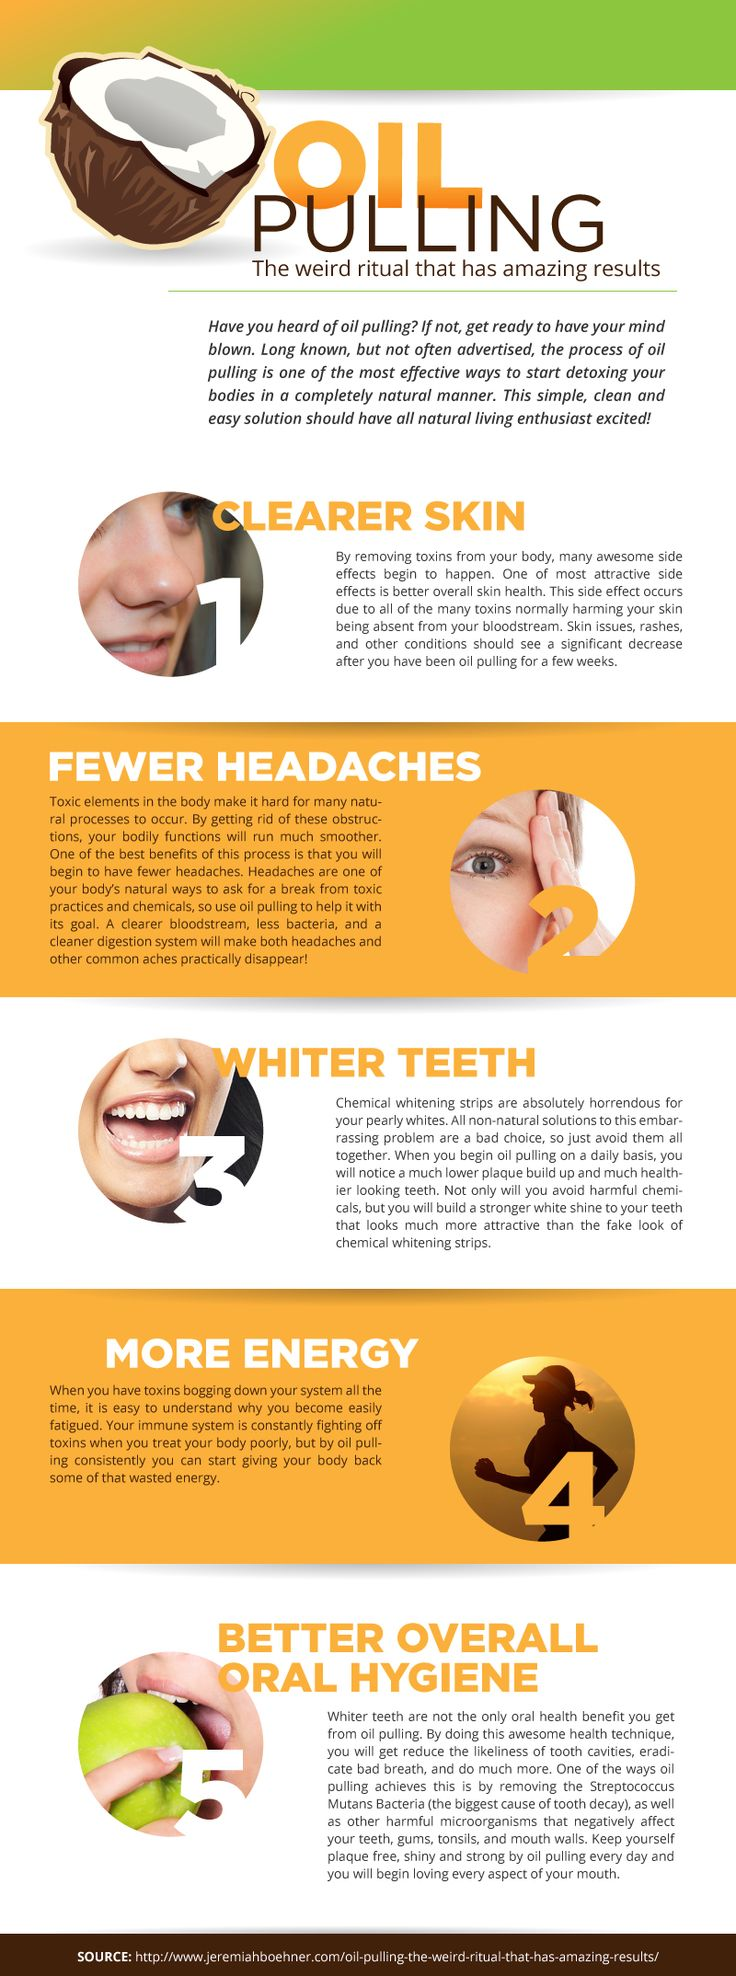 Have you heard about #Oilpulling? This simple, clean and easy solution should have all natural living enthusiast excited!  For more information go to: http://www.jeremiahboehner.com/oil-pulling-the-weird-ritual-that-has-amazing-results/